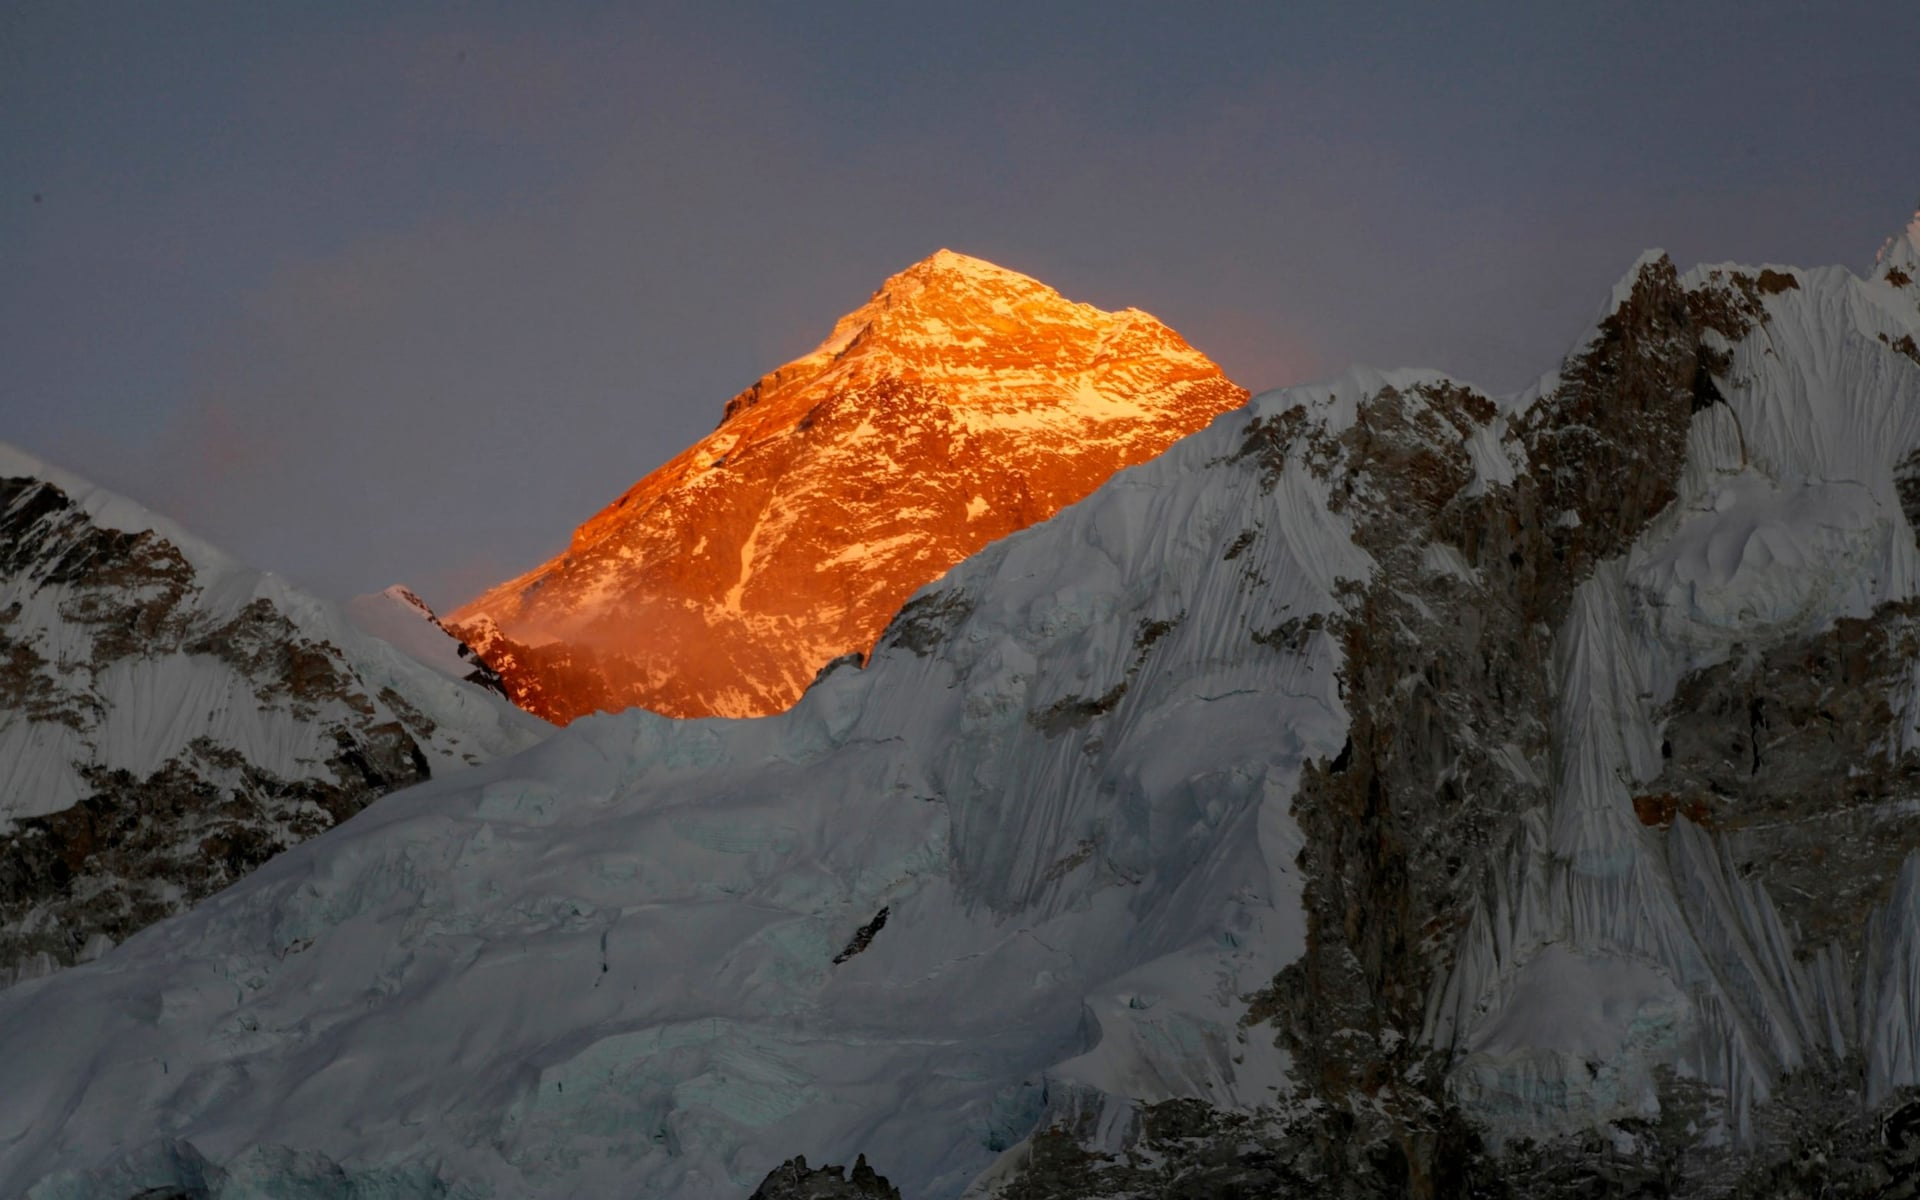 Mt. Everest is seen from the way to Kalapatthar in Nepal CREDIT: AP PHOTO/TASHI SHERPA